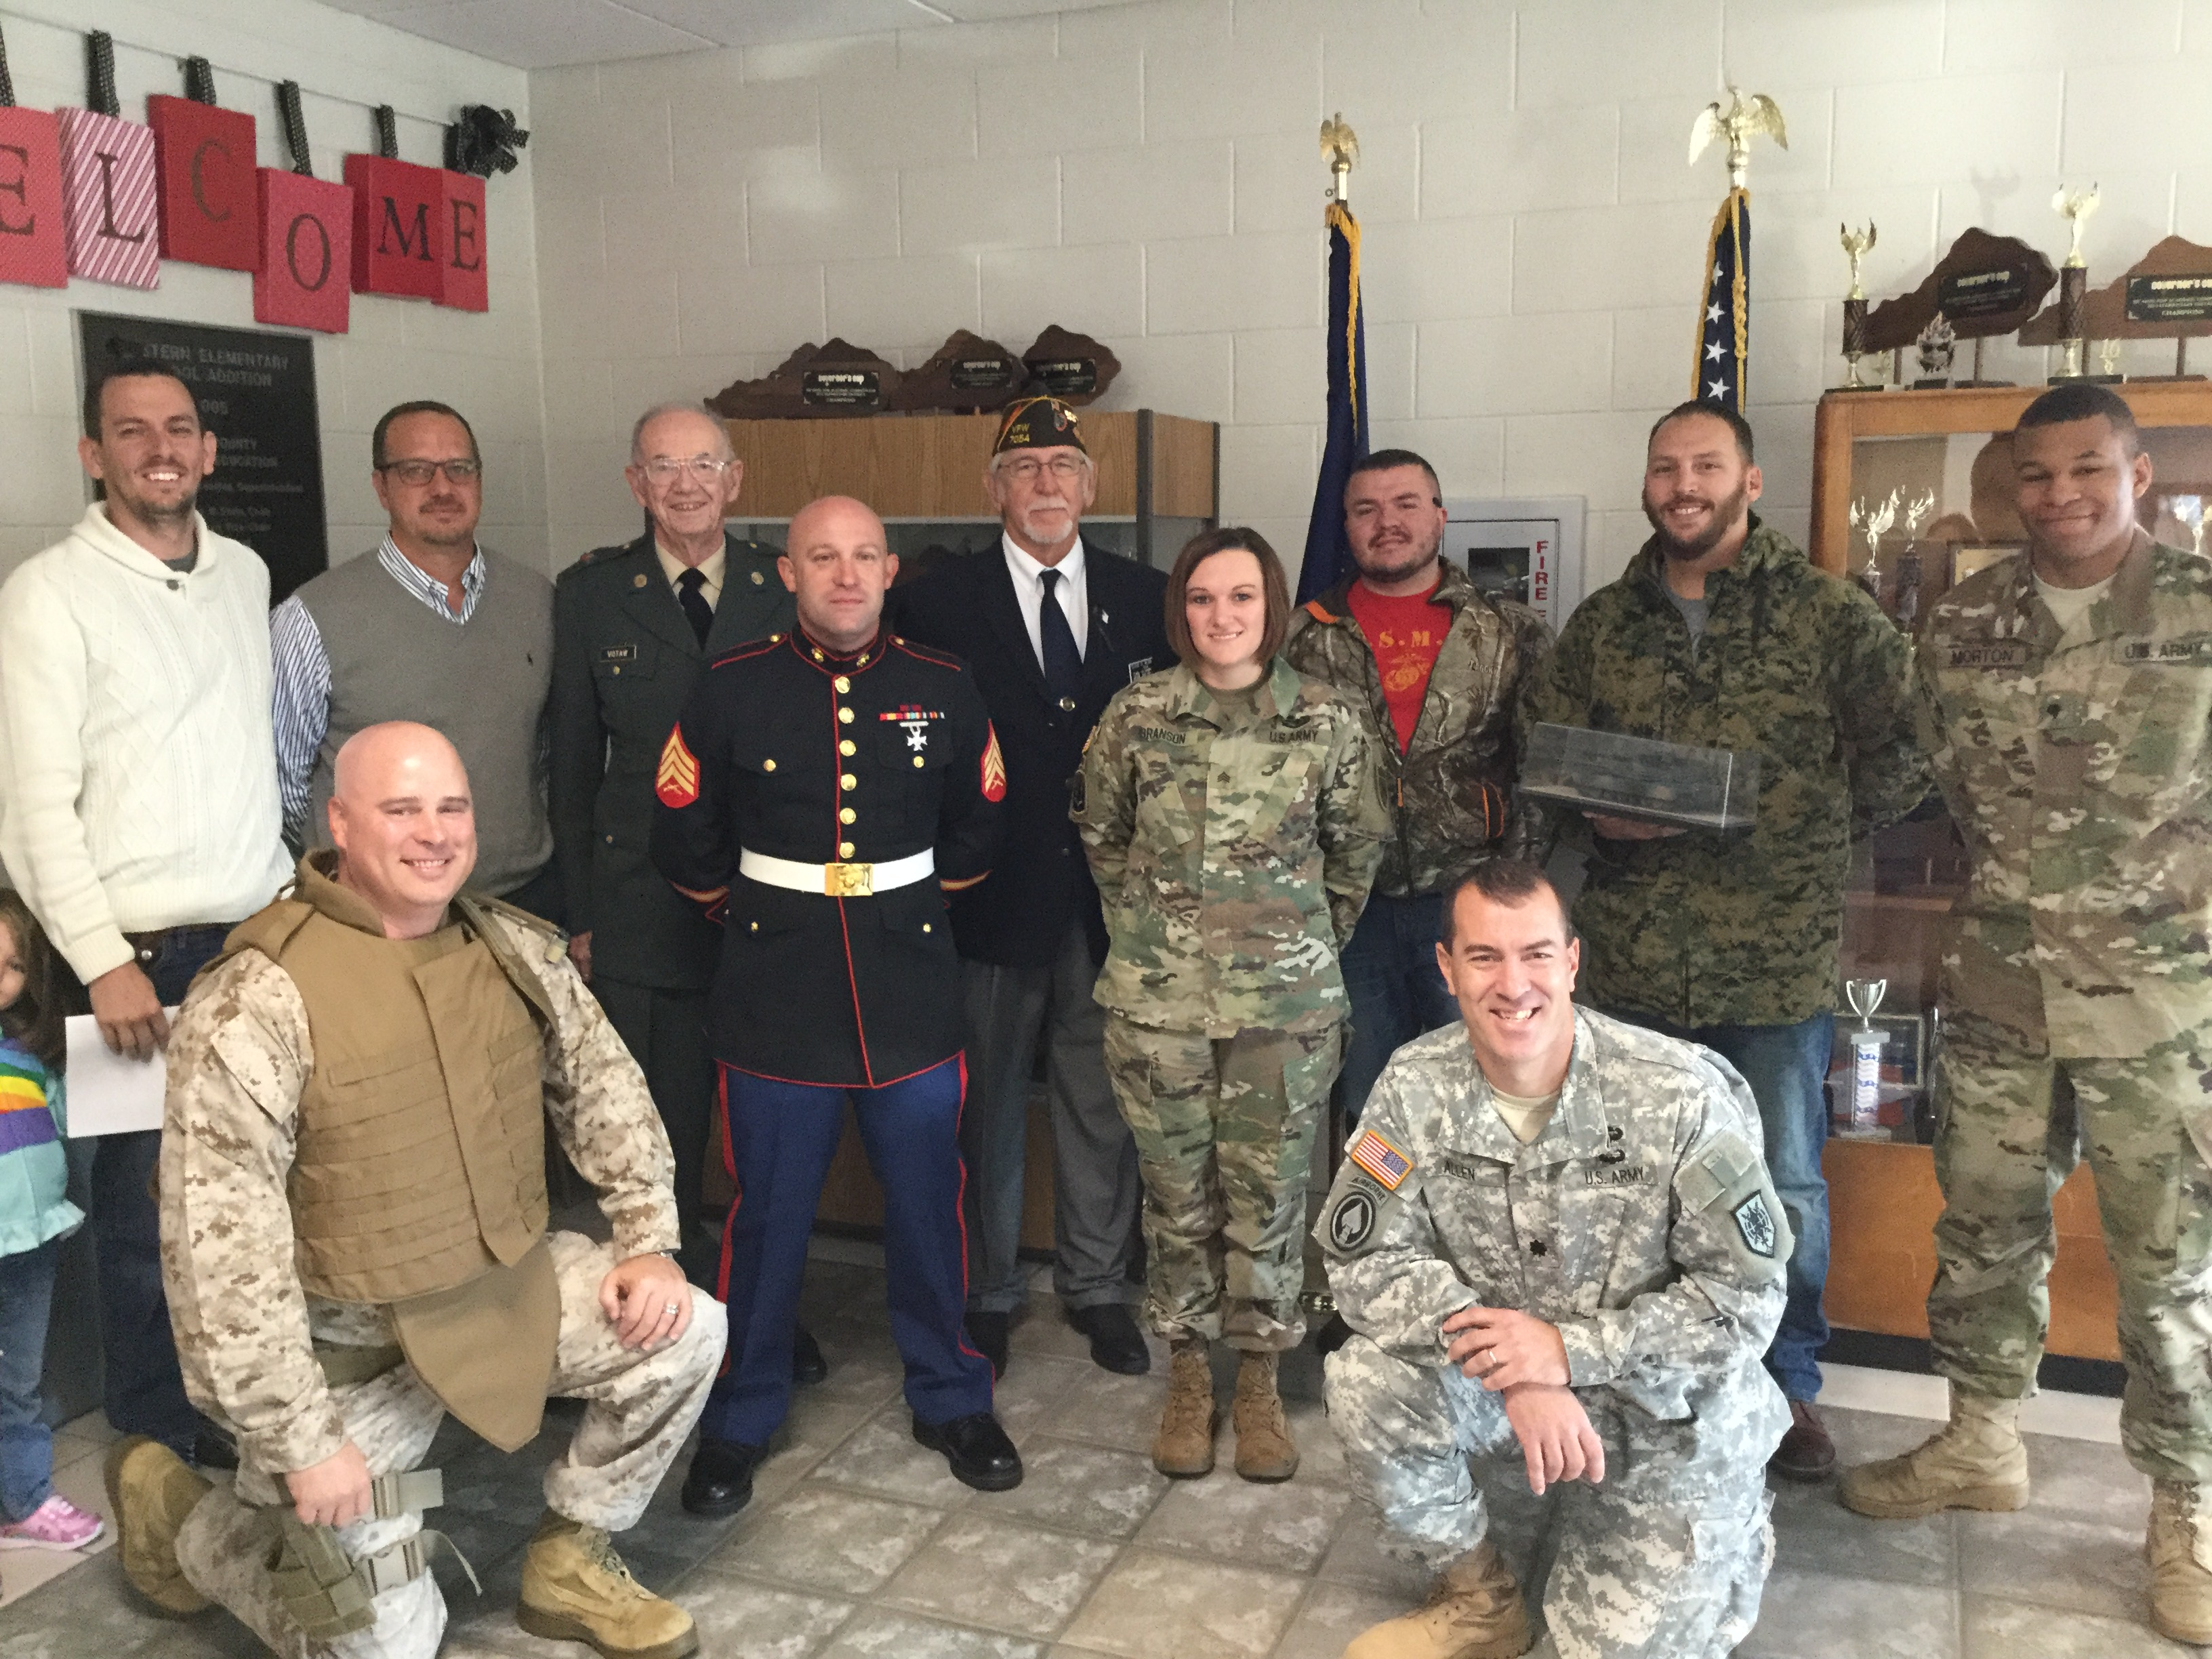 Soldiers visit Western for Veterans day